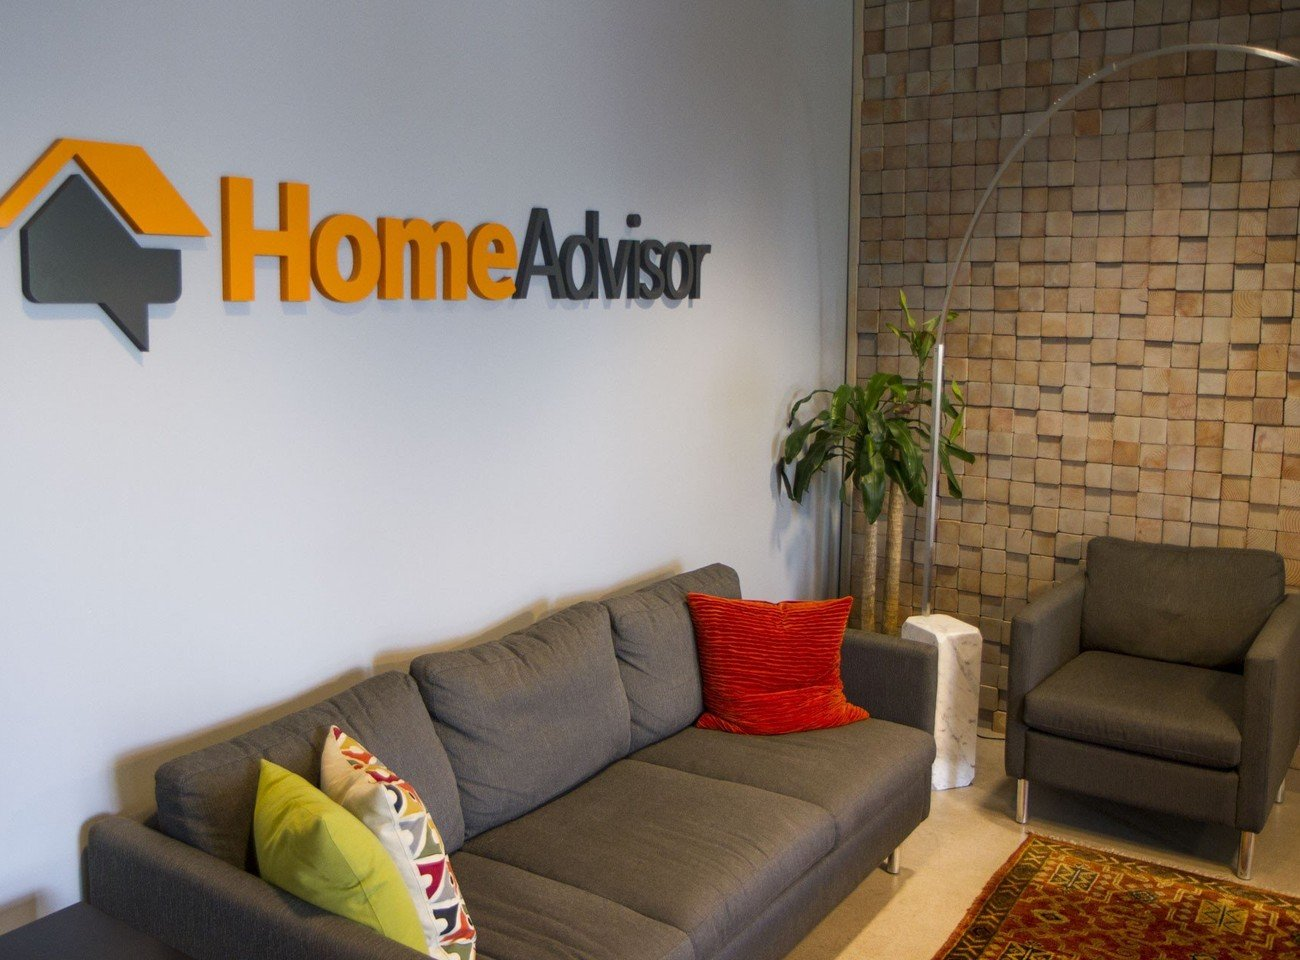 HomeAdvisor Careers